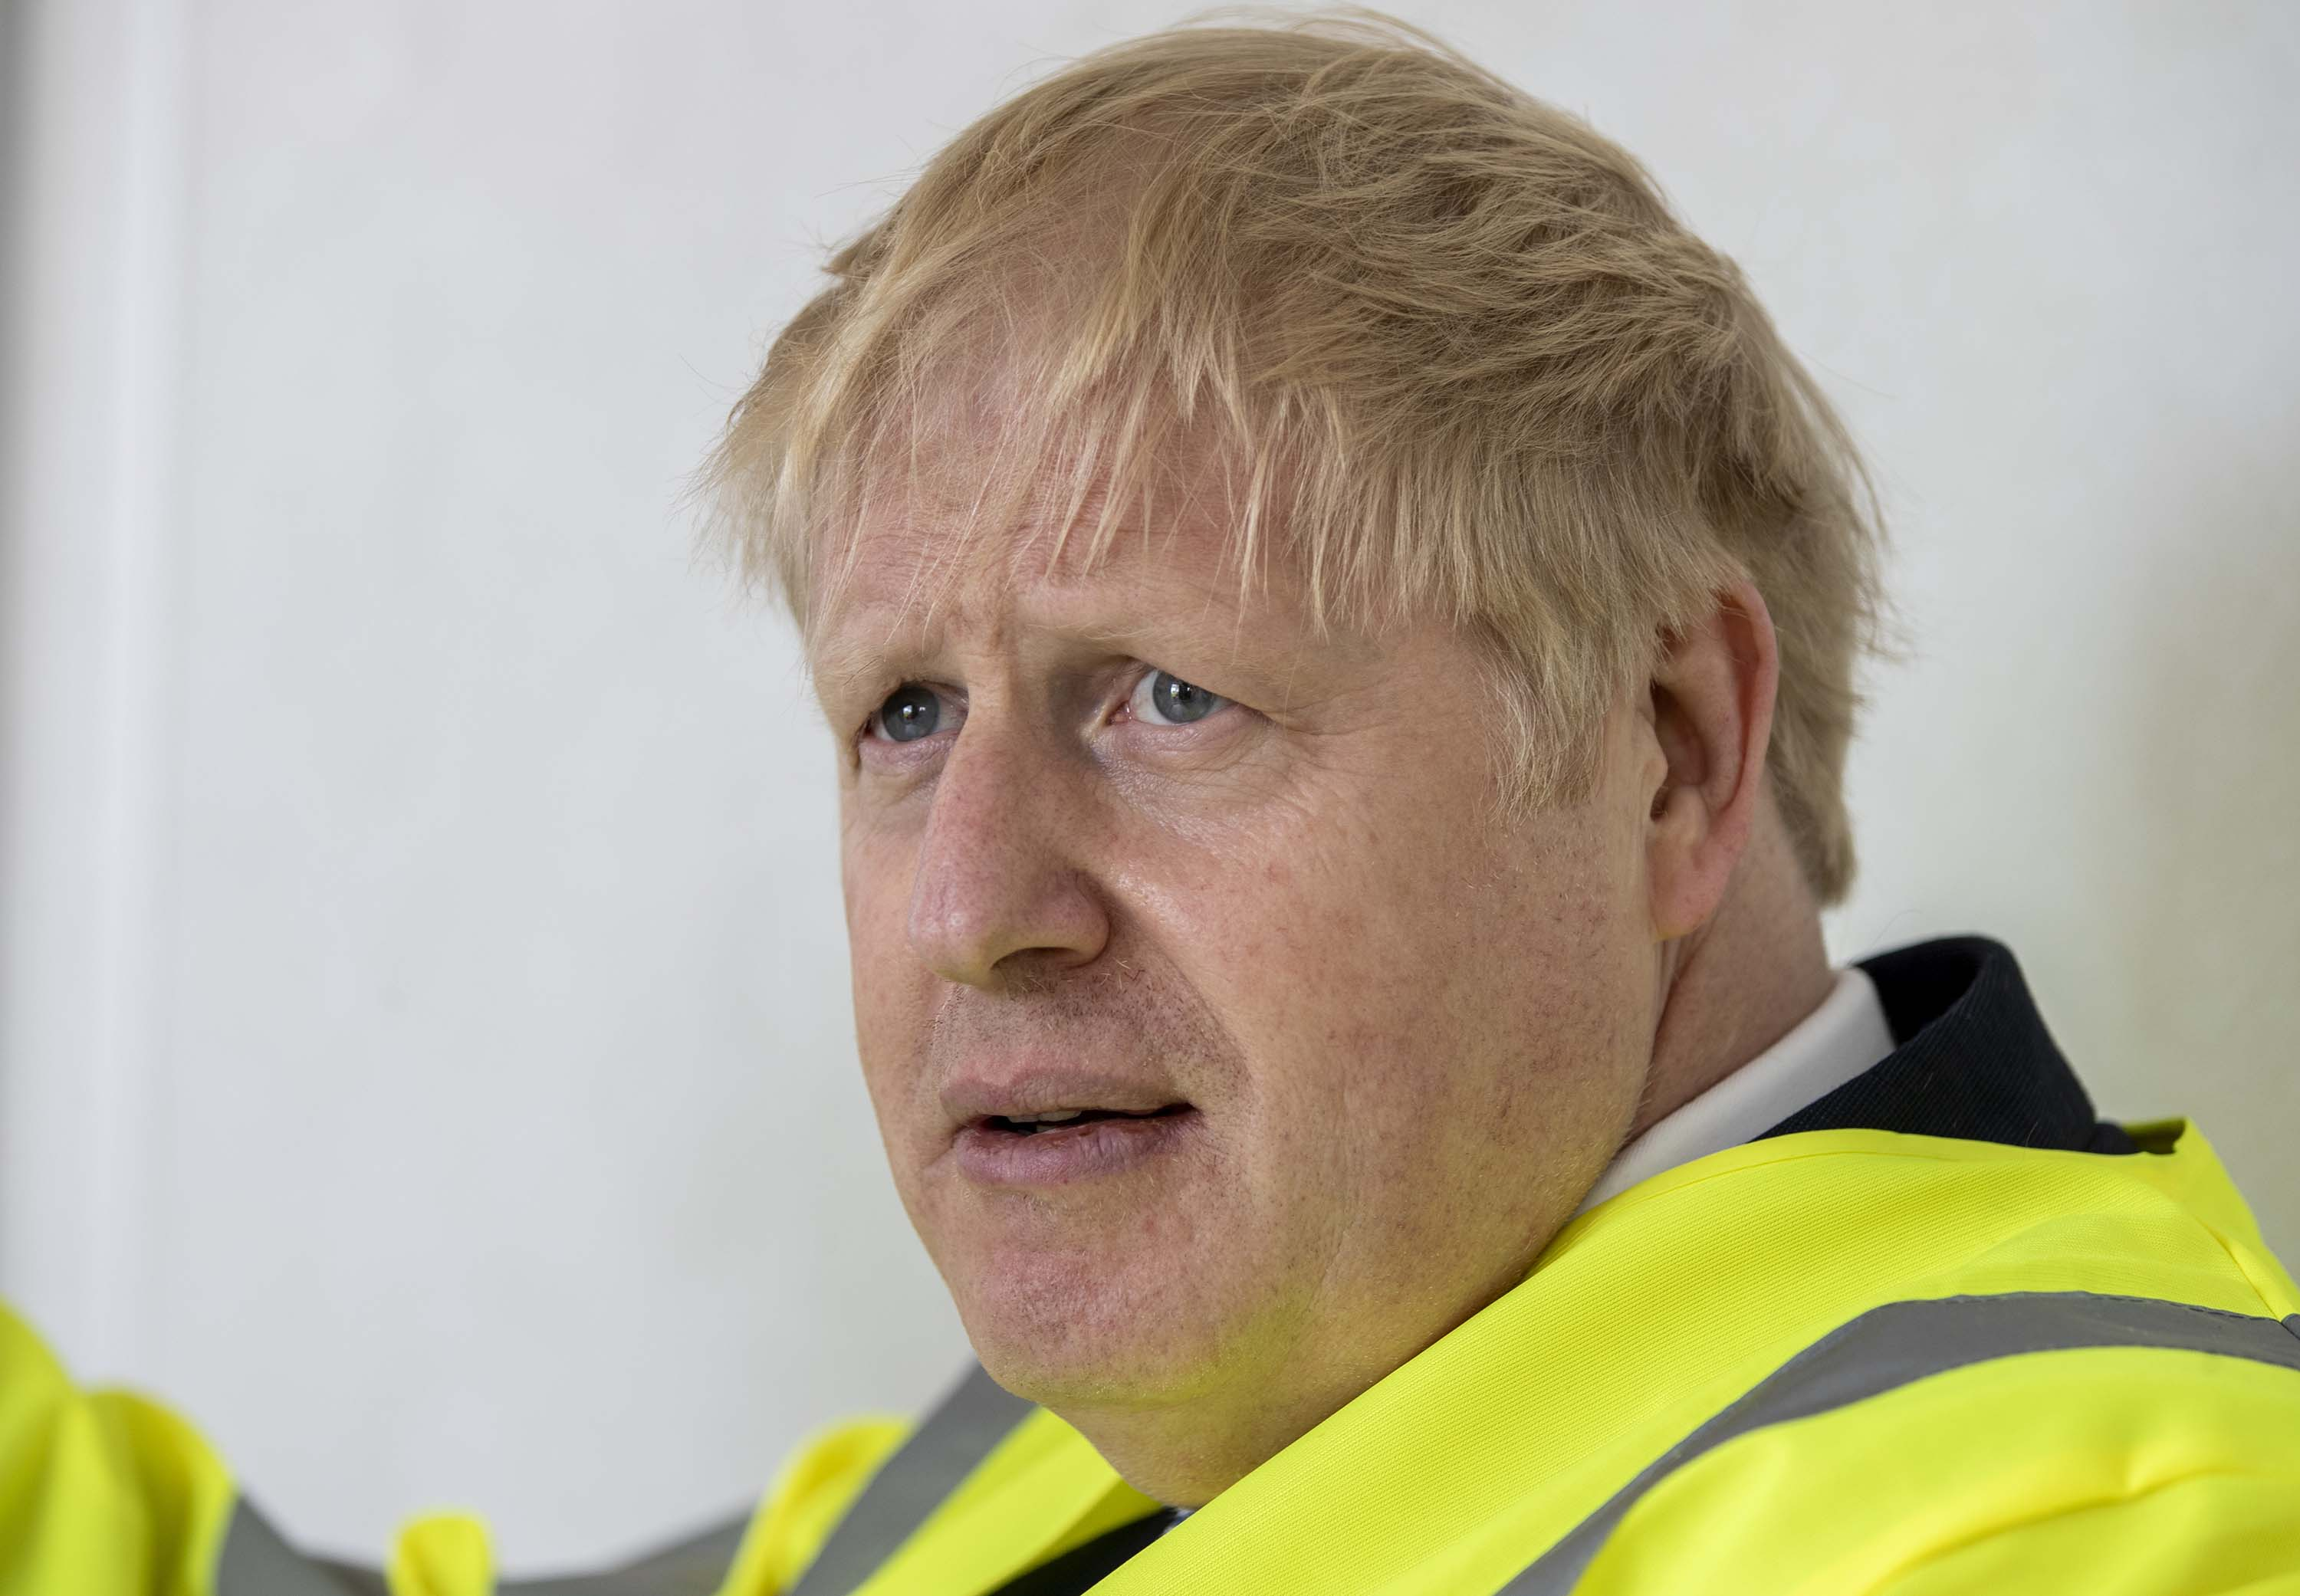 British Prime Minister Boris Johnson is pictured at the Siemens Rail factory construction site in Goole, England, on Monday, July 6.